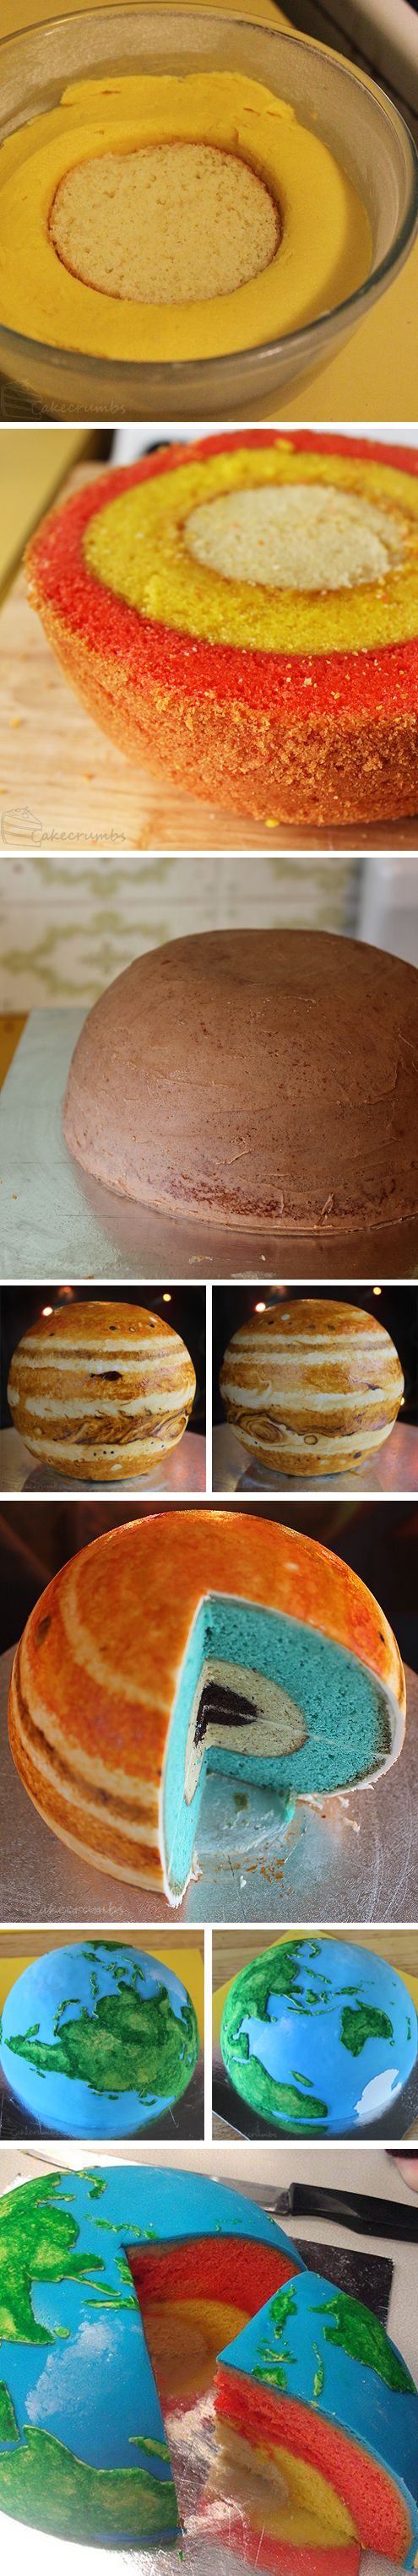 Cake Planets